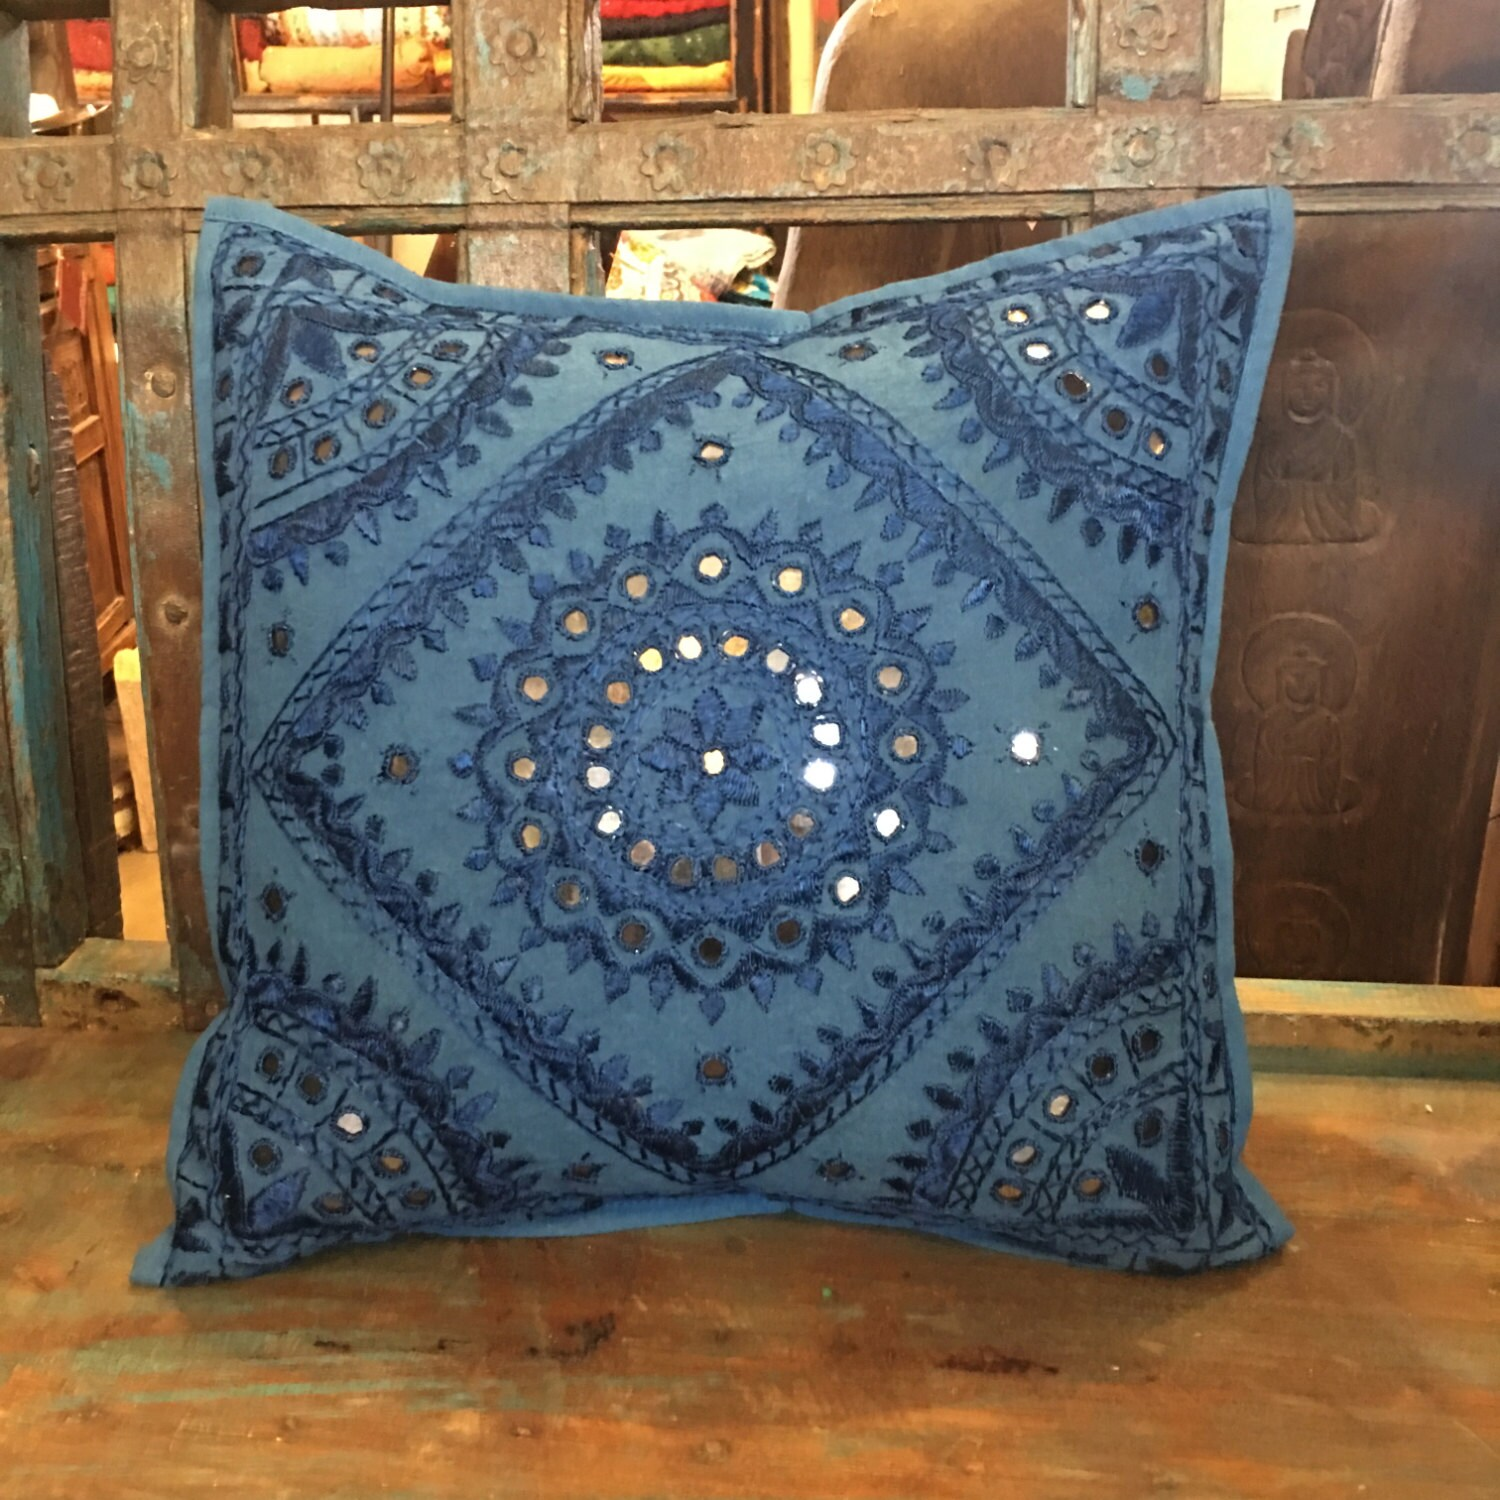 Moroccan Style Floor Pillows, Decorative Throw Pillow Covers, Blue Mirror